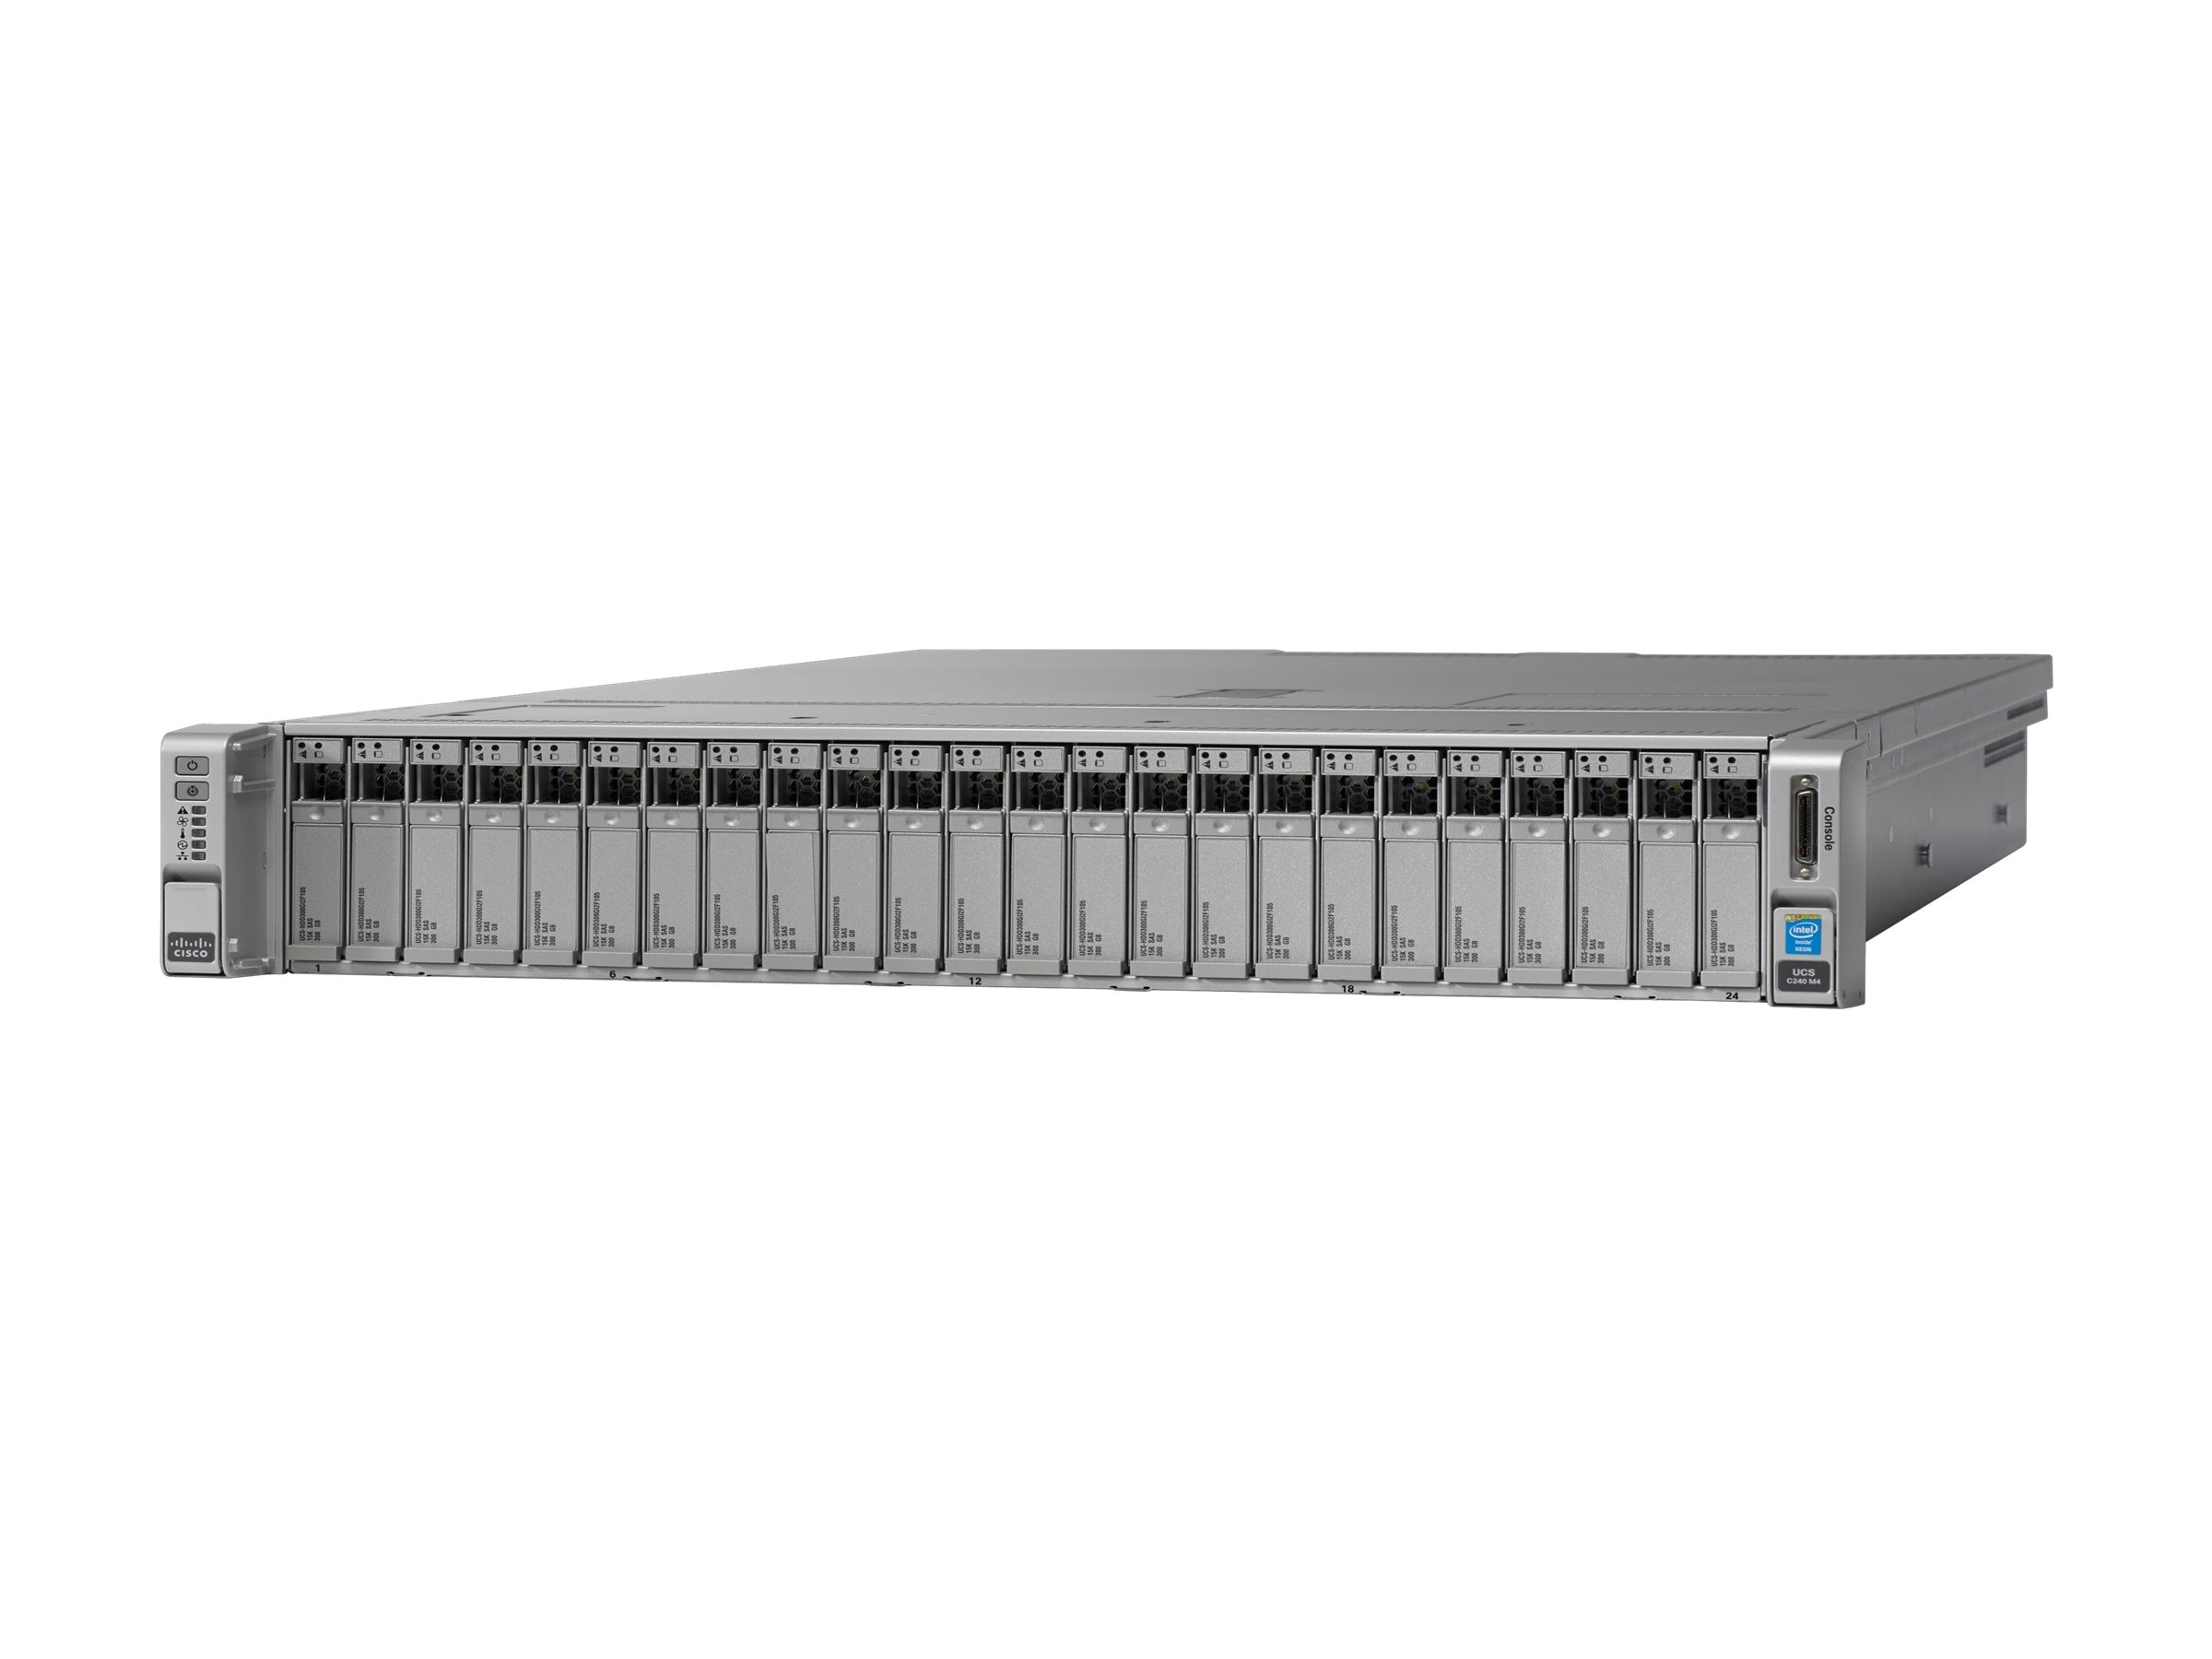 Cisco UCS-SP-C240M4-F1 Image 2